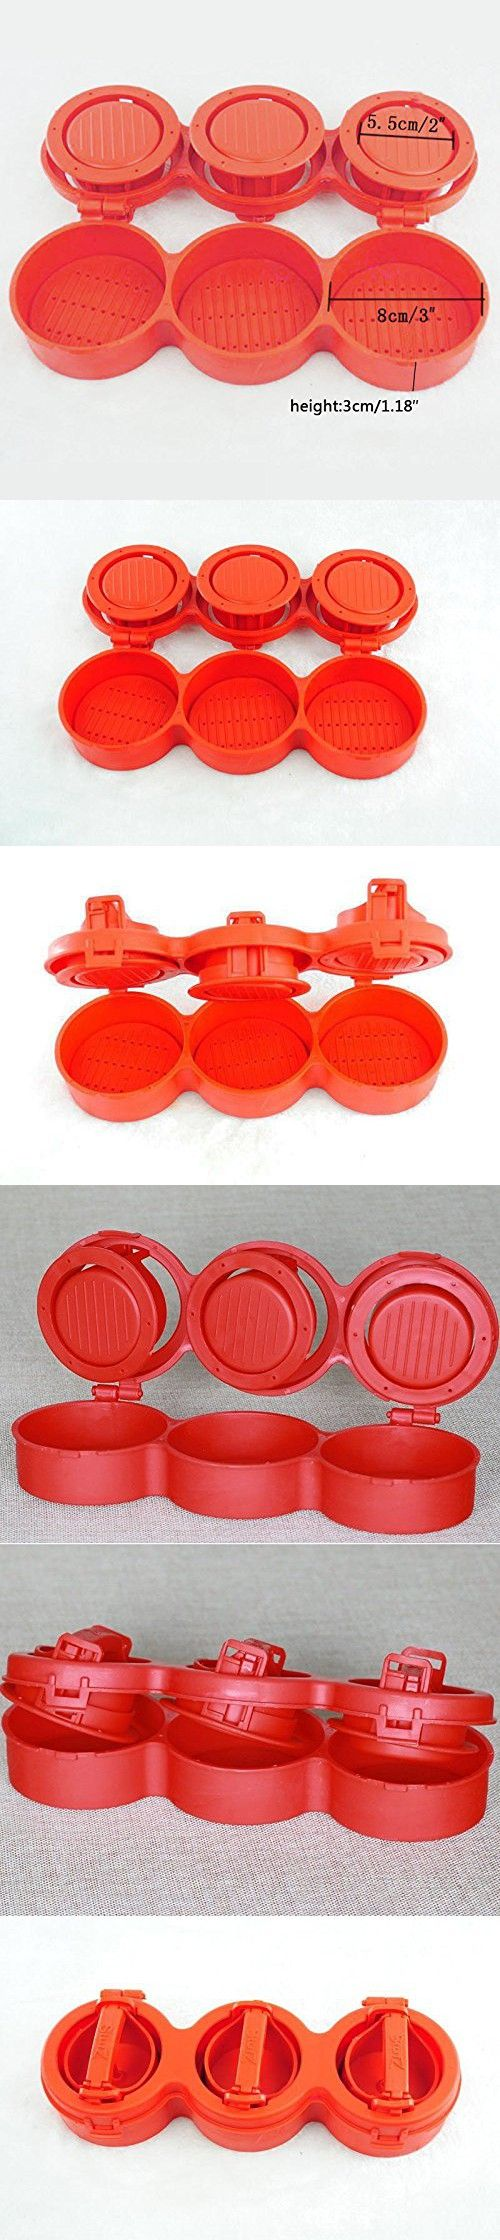 Hot Hamburger Mold Stufz Sliders Make up to 3 Stuffed Sliders at one time.Triple Burger Presses Hamburger Maker Patty Meat Maker